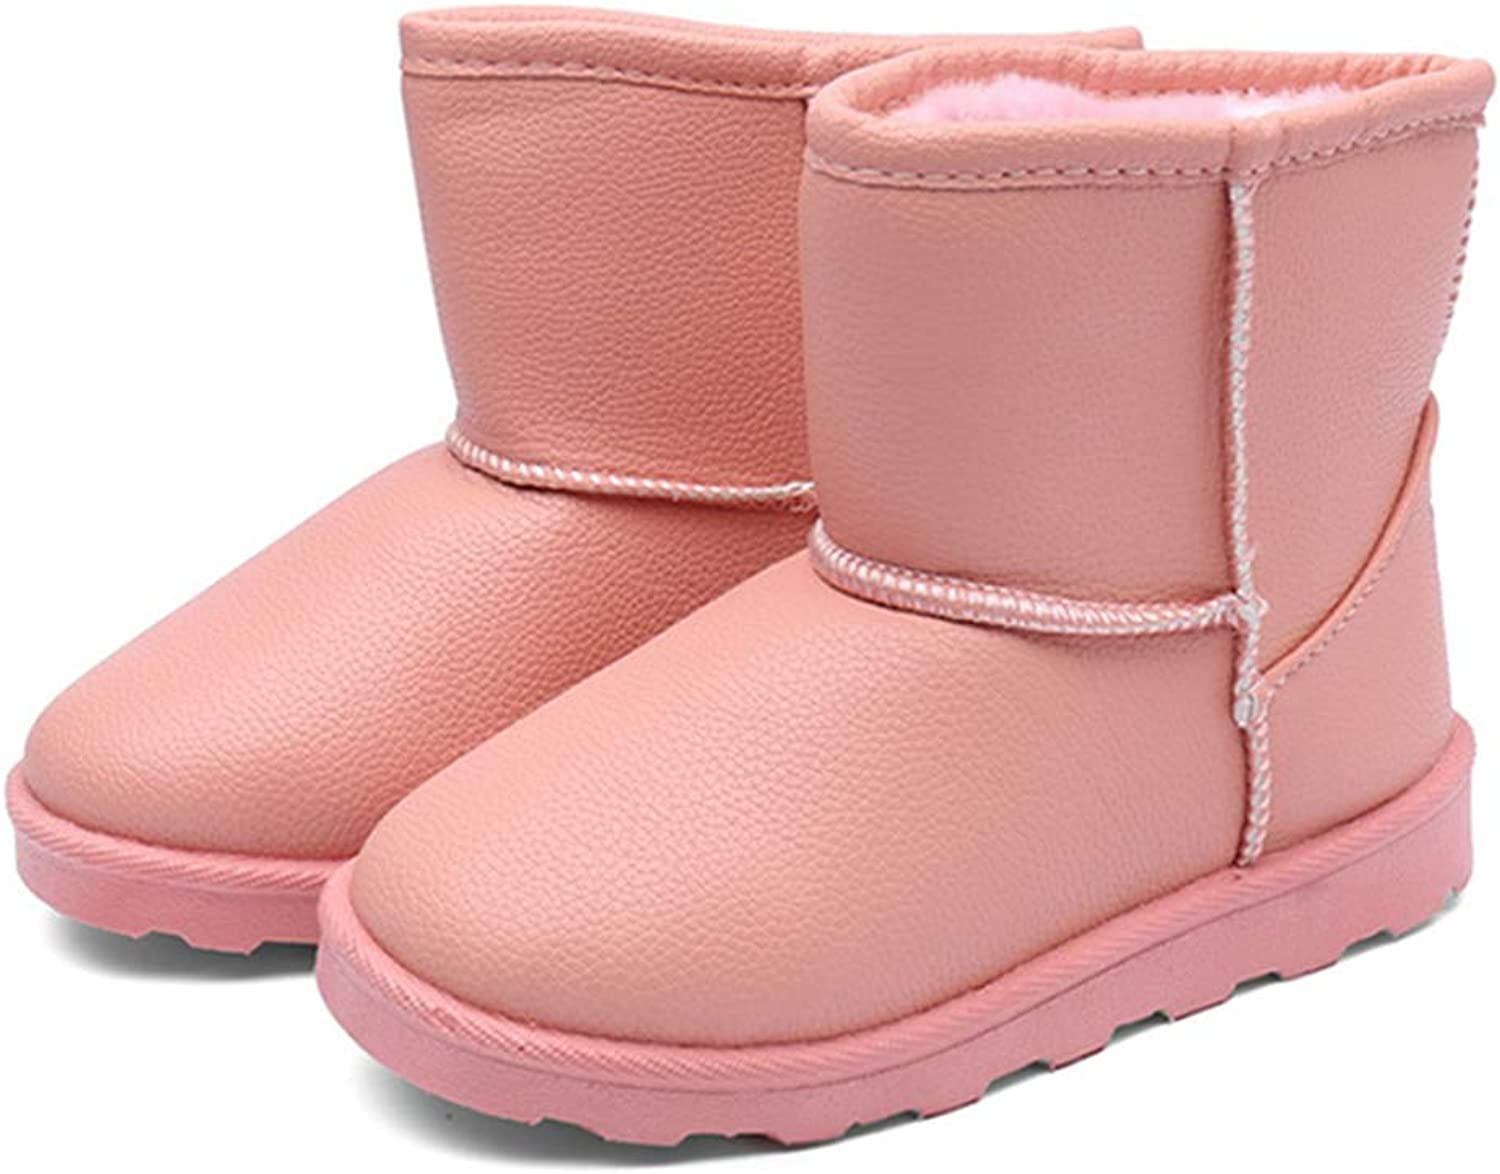 Fay Waters Women's Winter Snow Boots Antiskid Waterproof Fur Lined Warm shoes Outdoor Ankle Booties